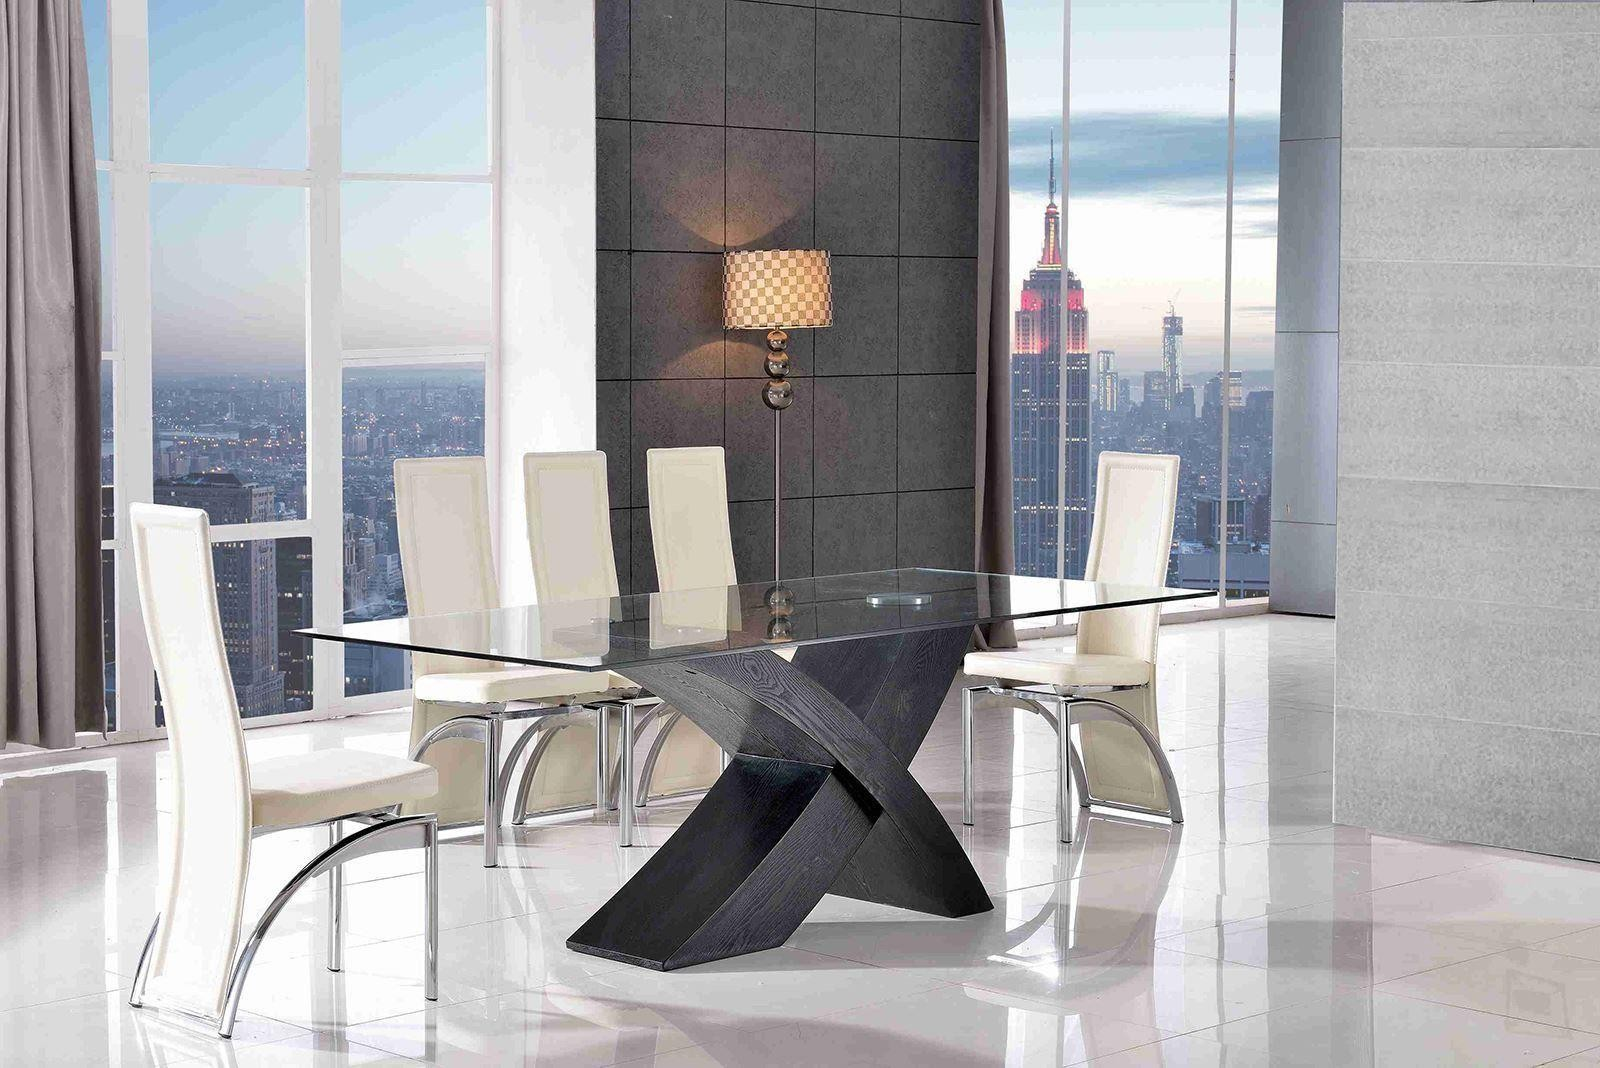 Valencia Black 160cm Wood and Glass Dining Table with 6 Alisa Dining Chairs [Ivory]